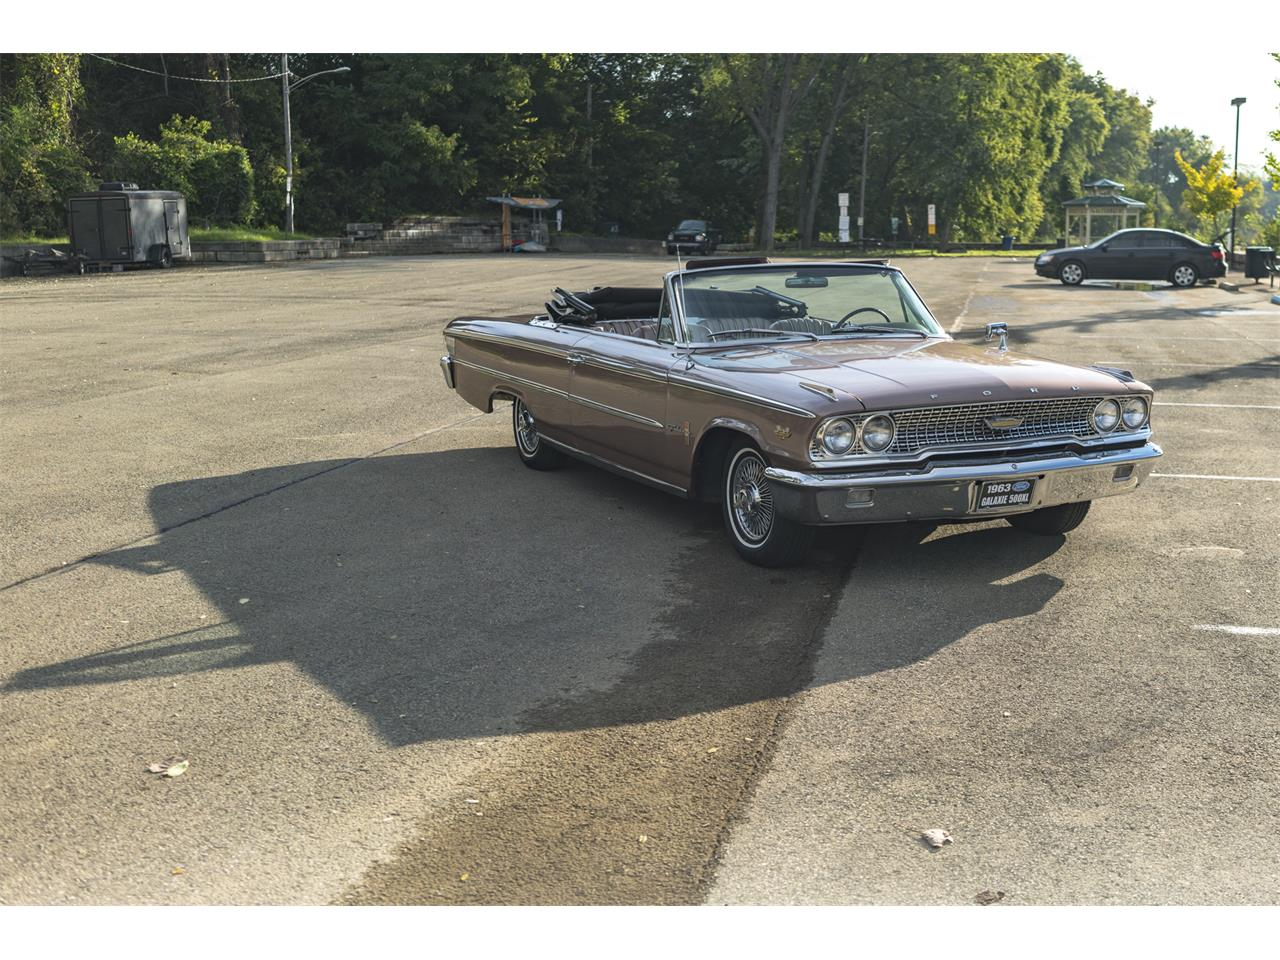 Large Picture of Classic '63 Ford Galaxie 500 XL located in Pennsylvania - $34,500.00 Offered by Fort Pitt Classic Cars - ORPQ